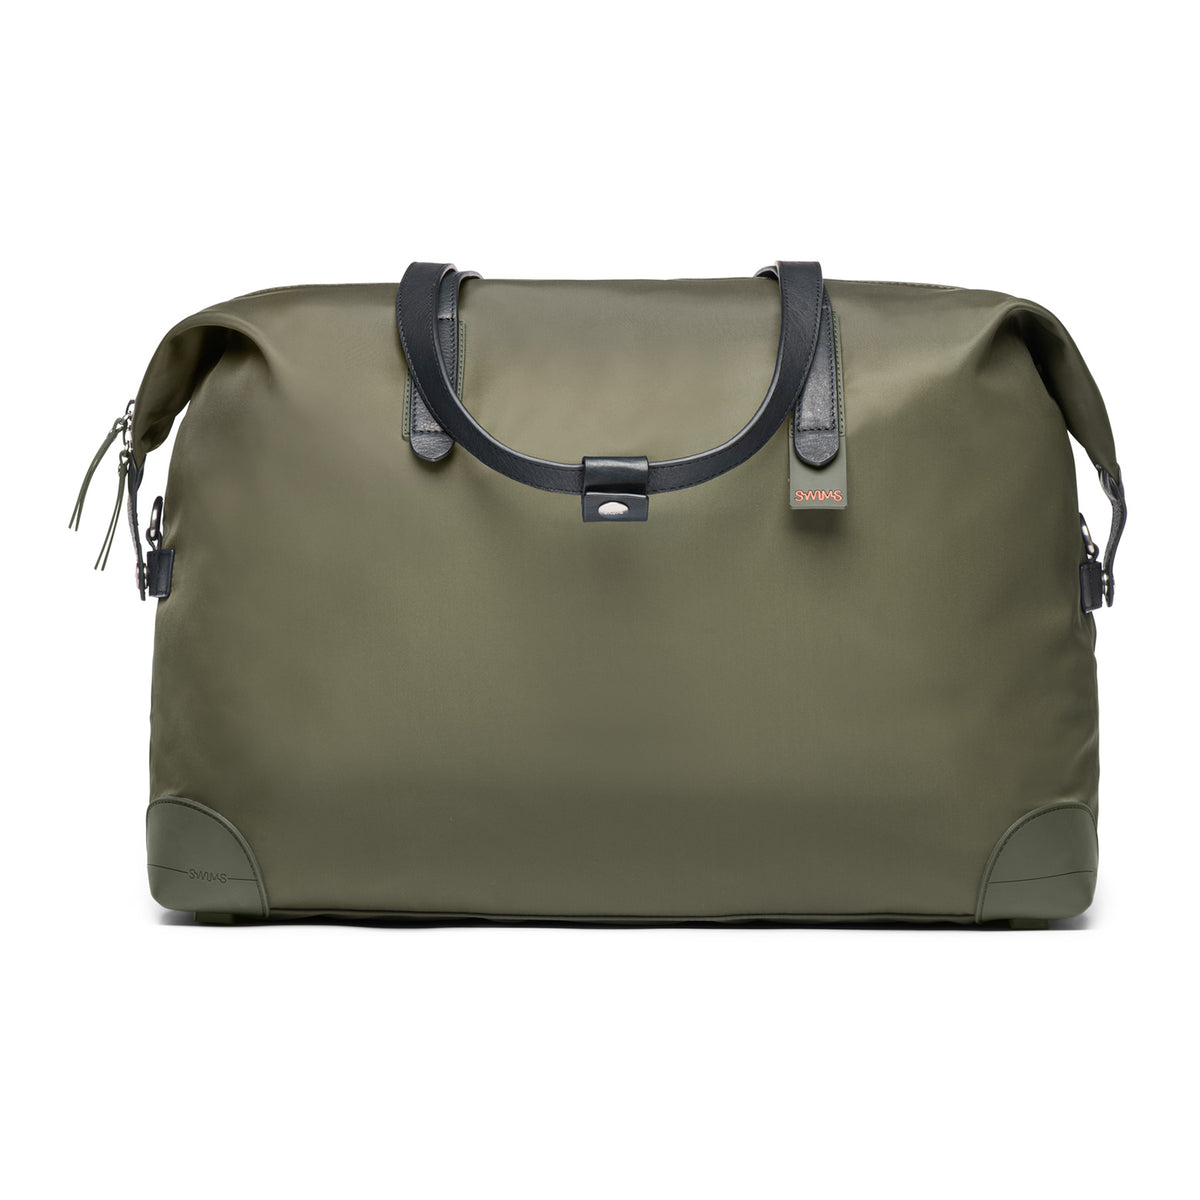 48 Hour Holdall - background::white,variant::Olive